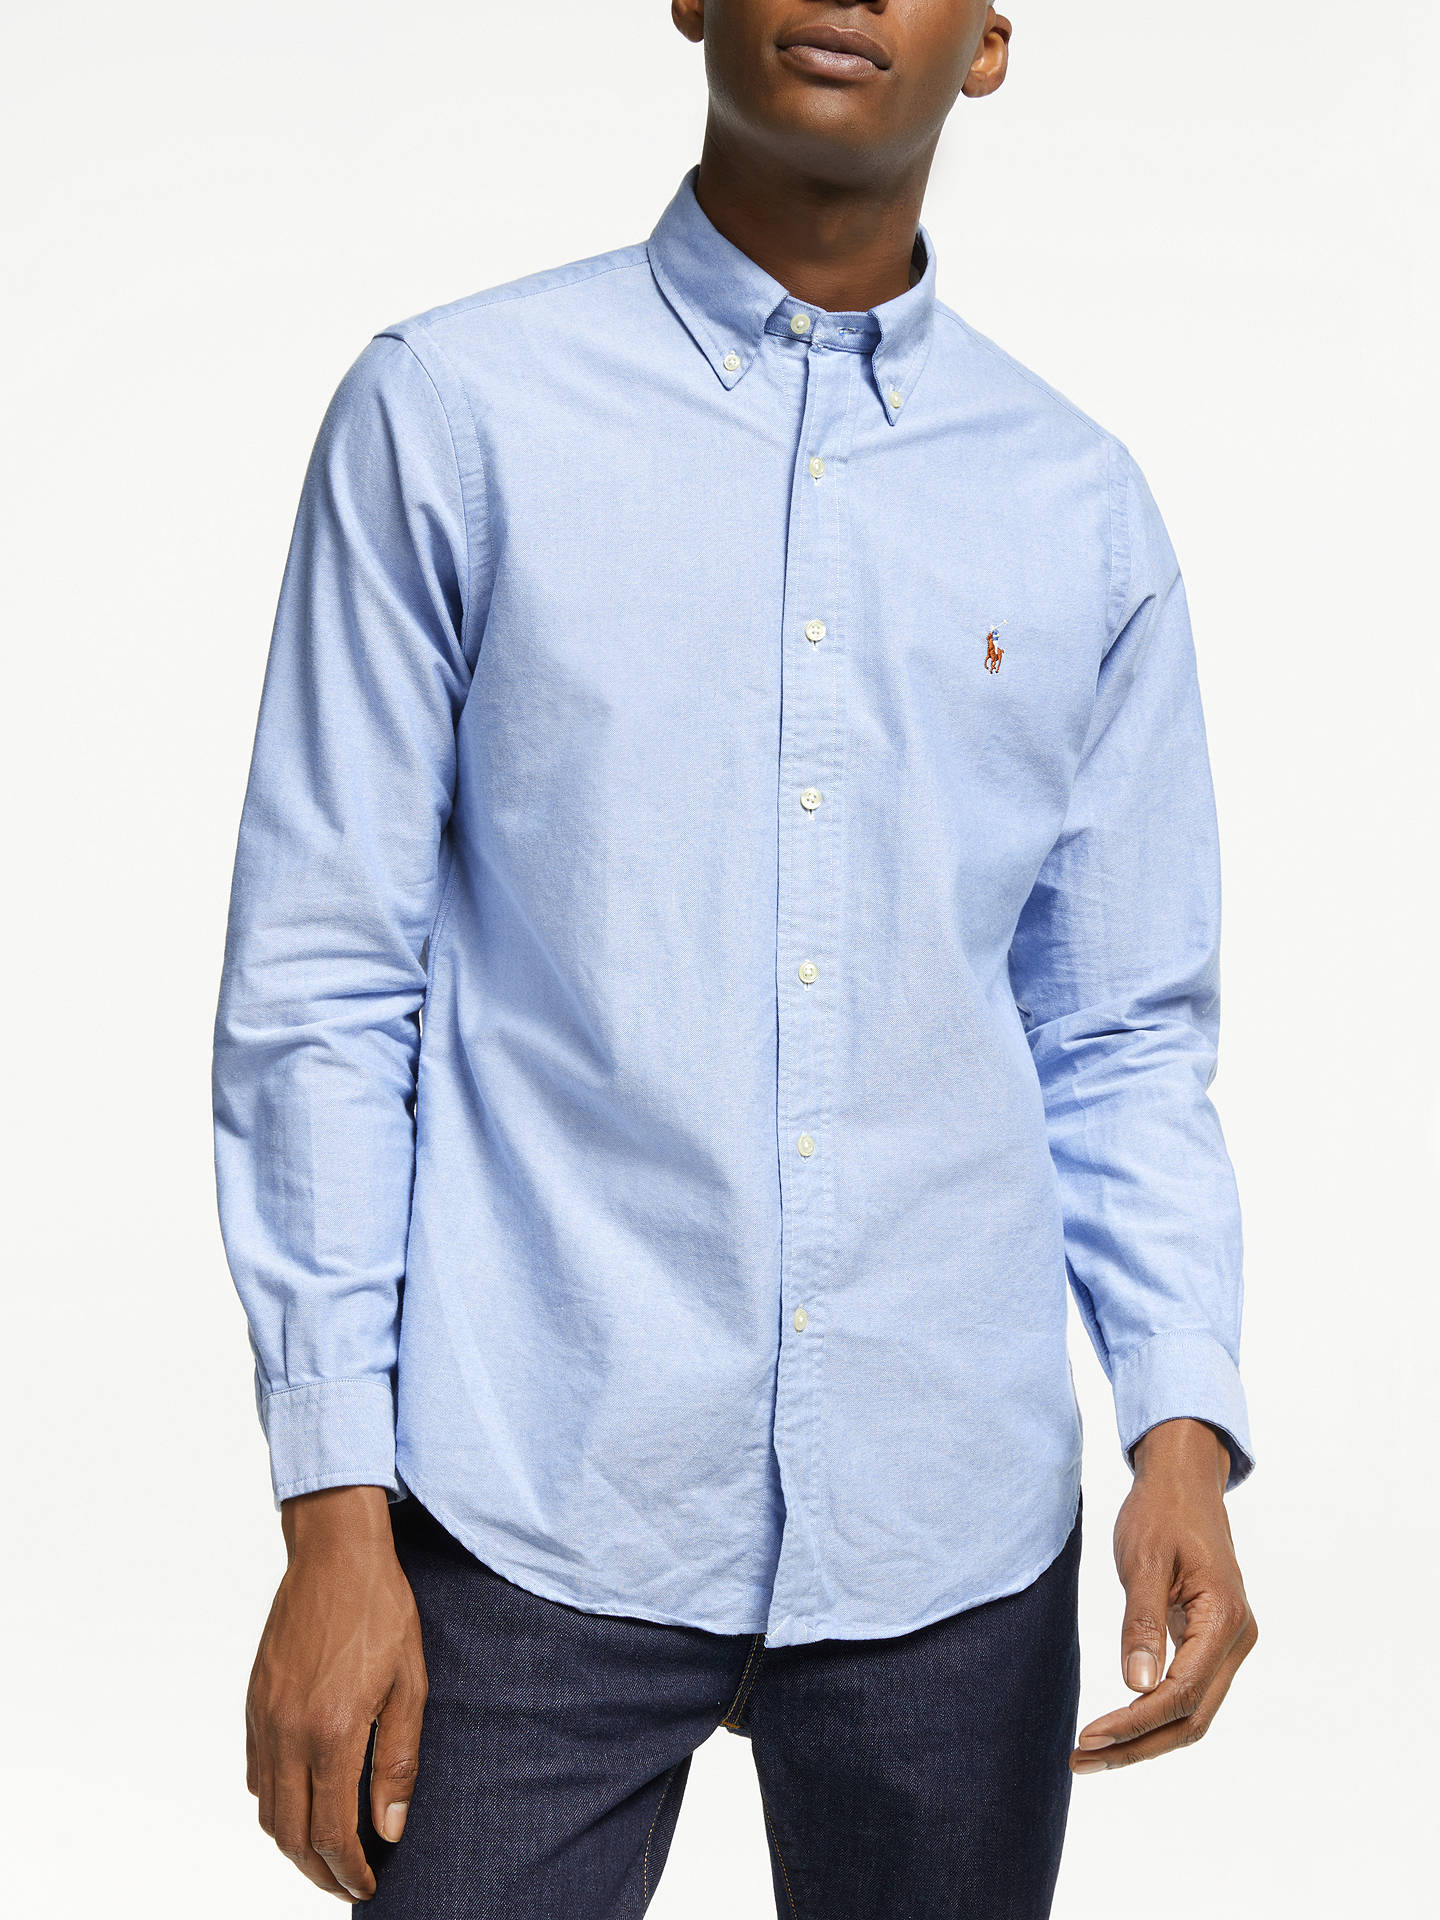 0ef9f72924c Buy Polo Ralph Lauren Regular Fit Oxford Shirt